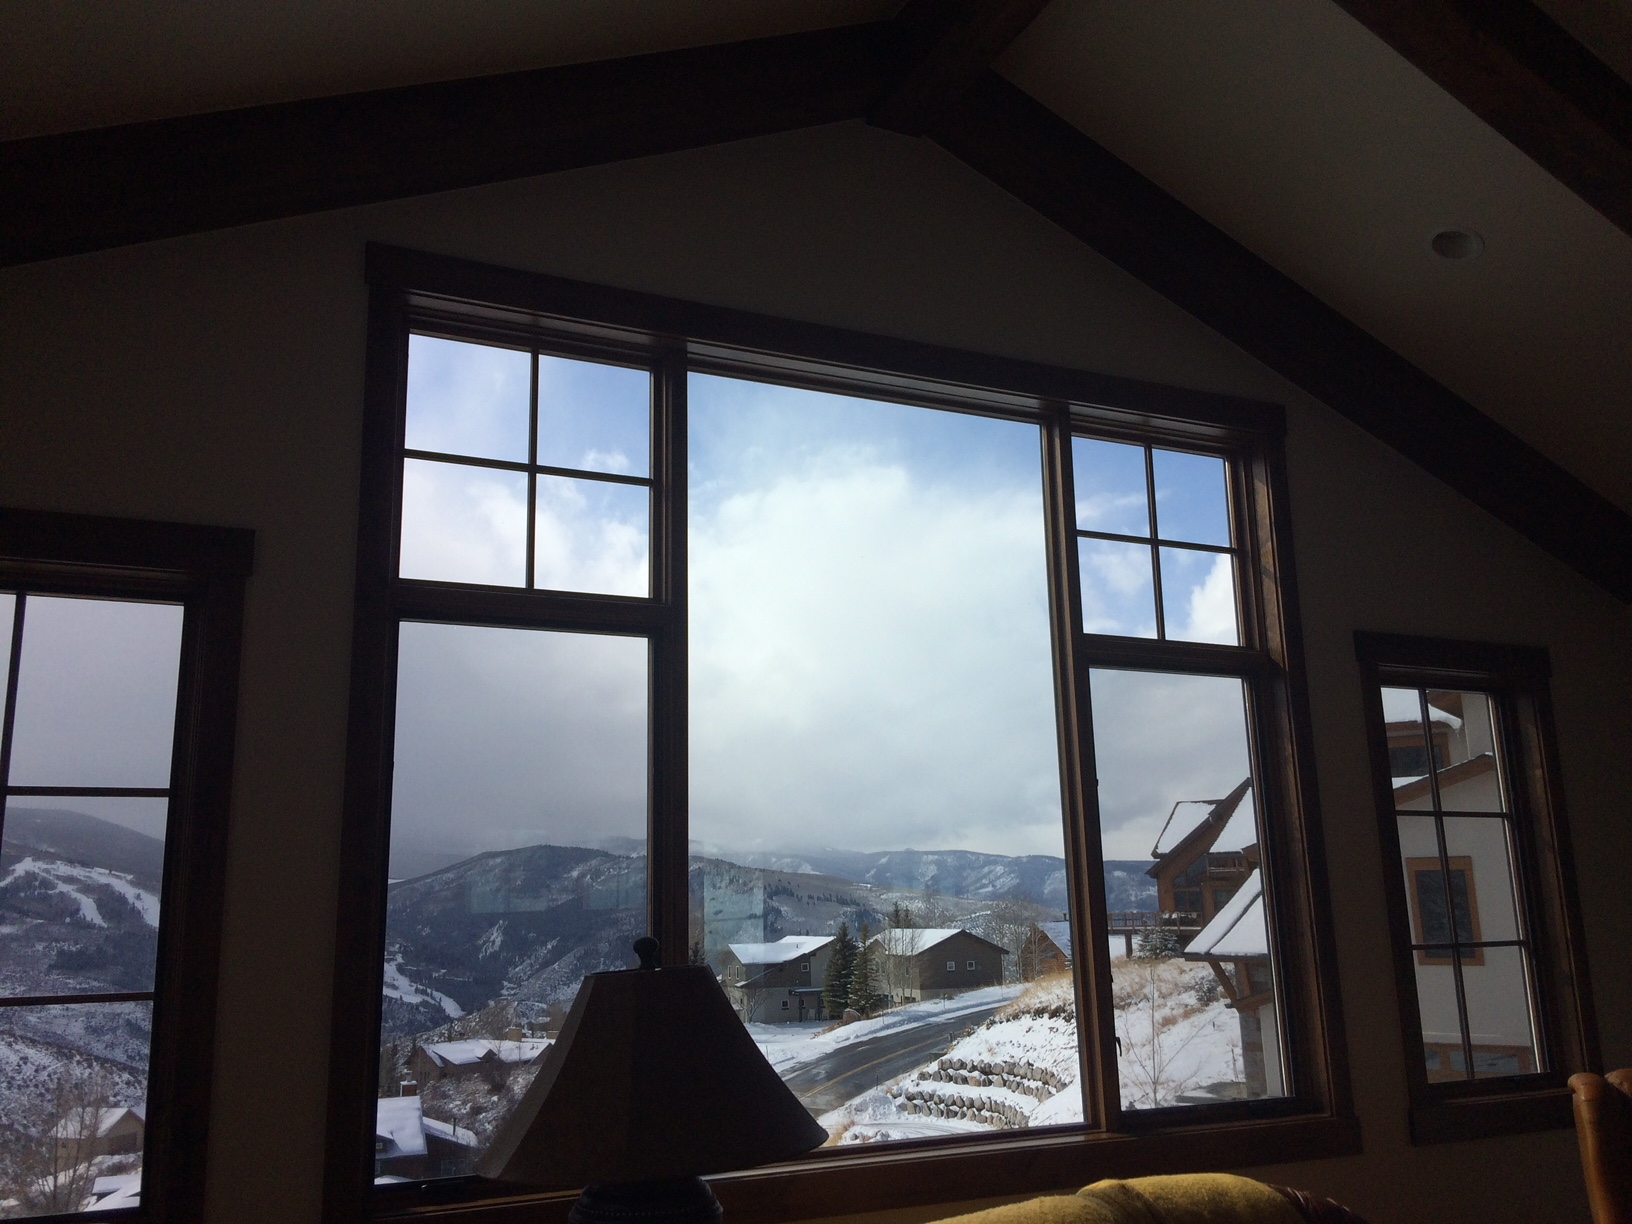 3M Night Vision 25 applied to the windows at this home in Avon, CO. Great views of the slopes, less the glare, and UV Rays! A must